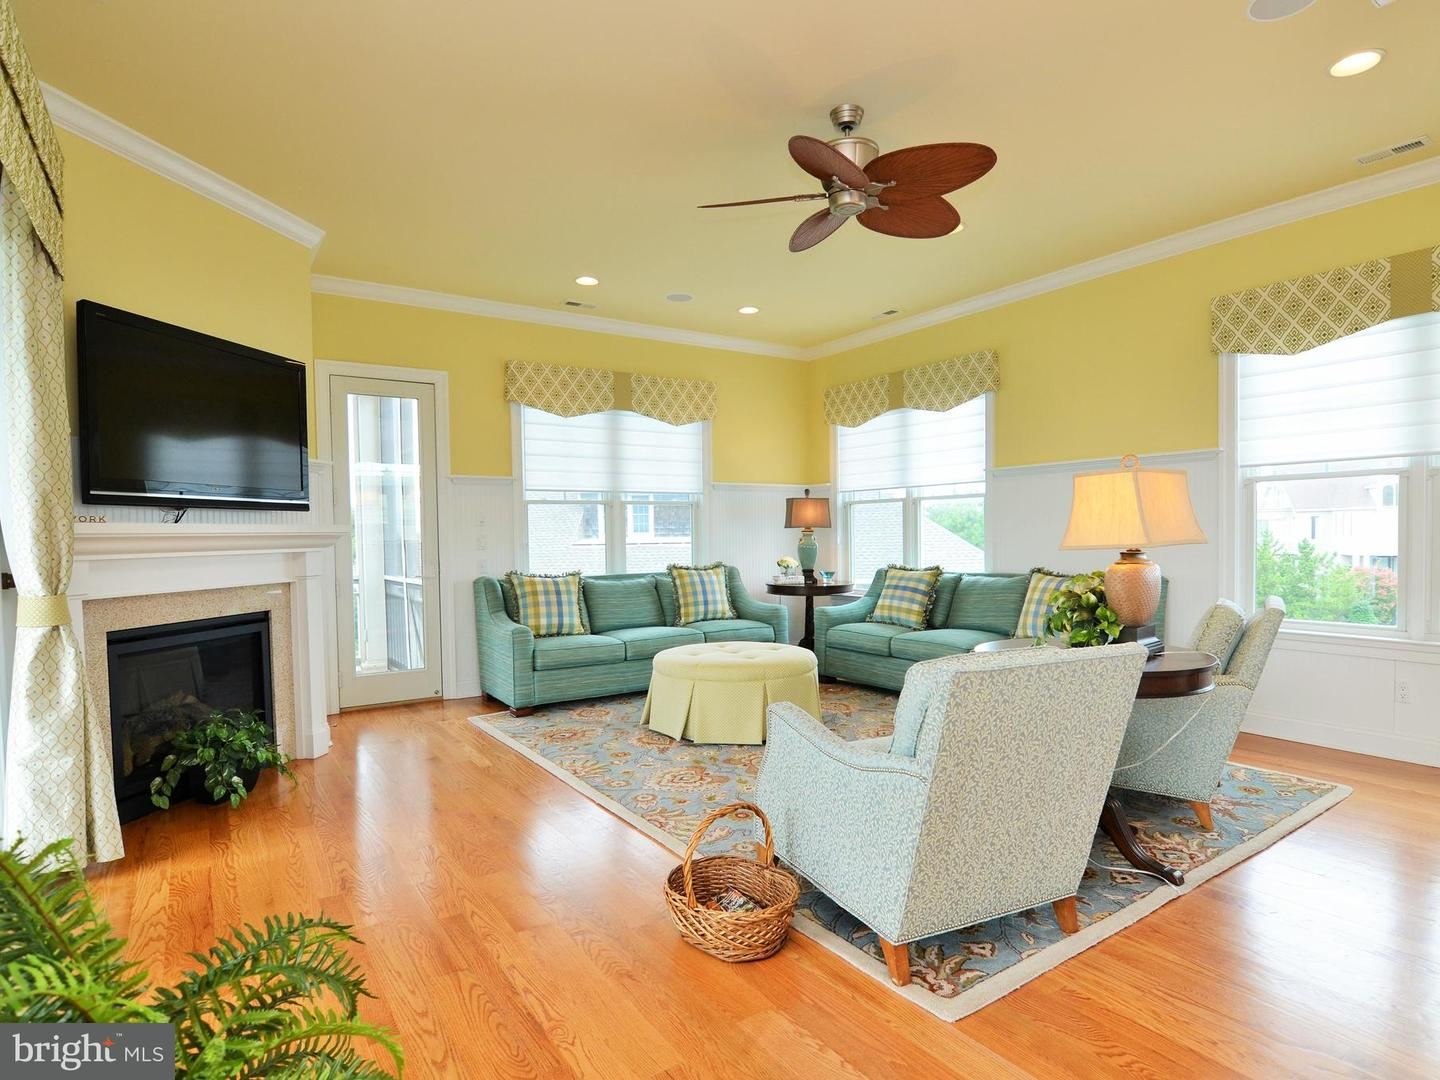 1002293530-300500811025-2018-09-25-15-08-25 31 Hall Ave | Rehoboth Beach, De Real Estate For Sale | MLS# 1002293530  - Suzanne Macnab